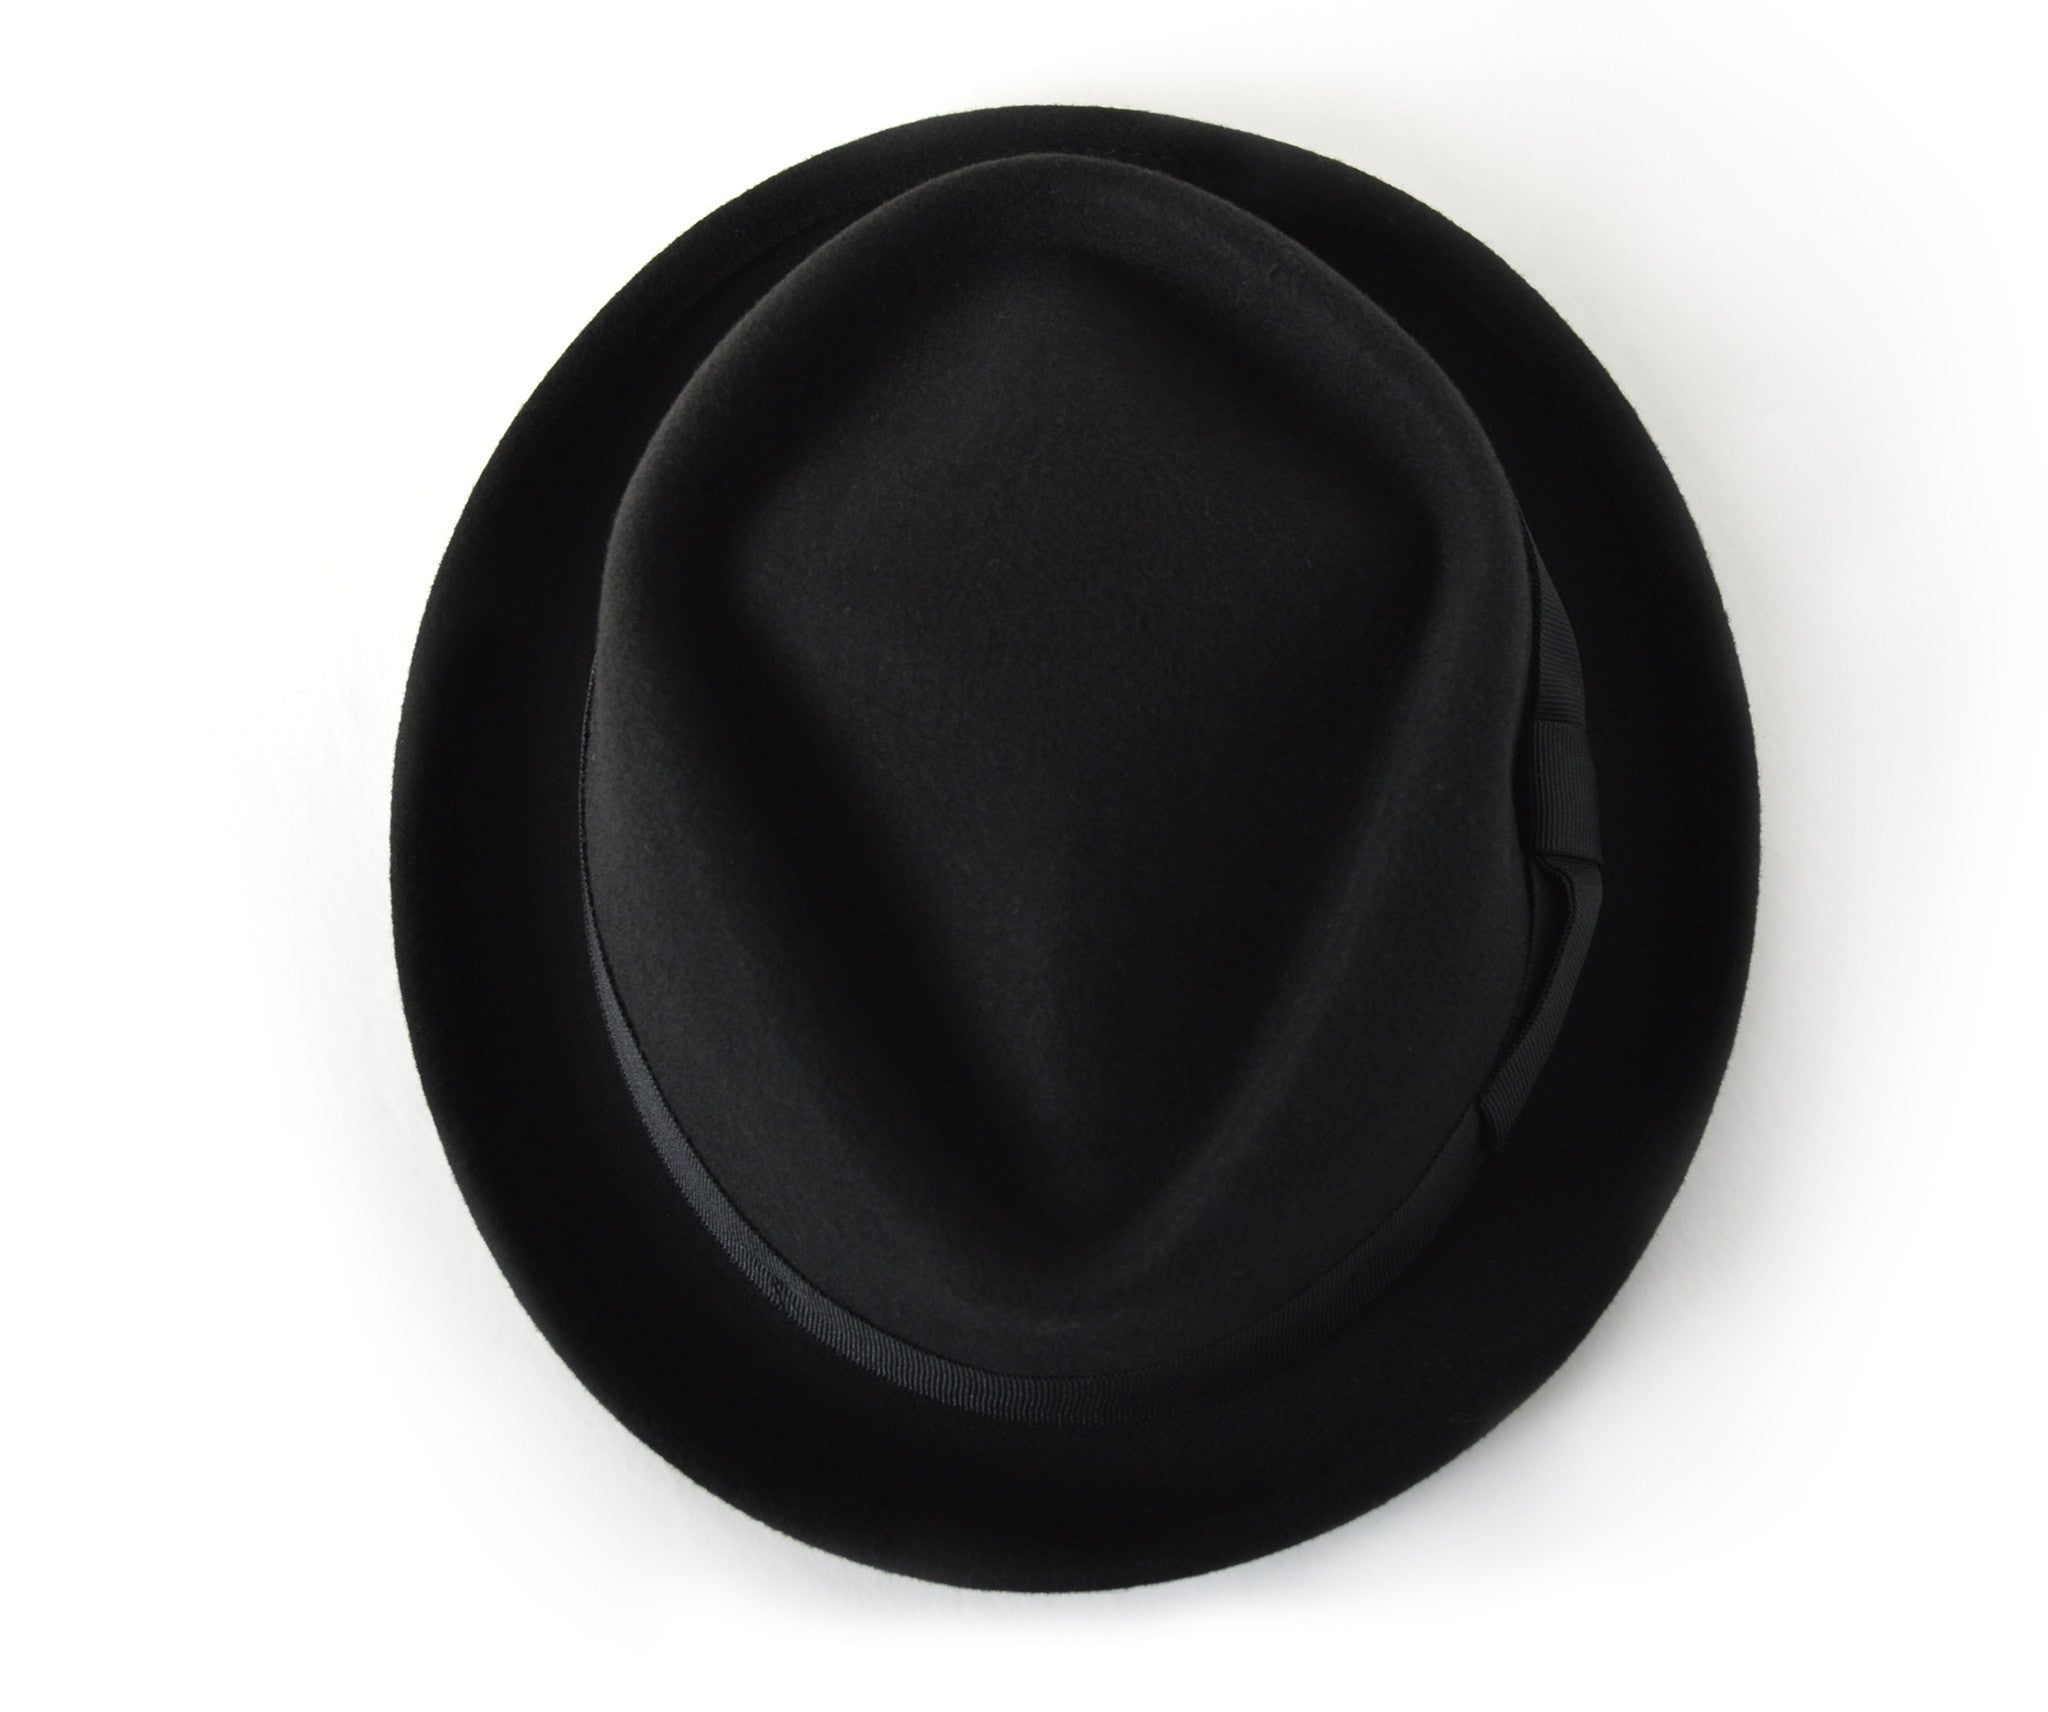 Fedora Hat Top View